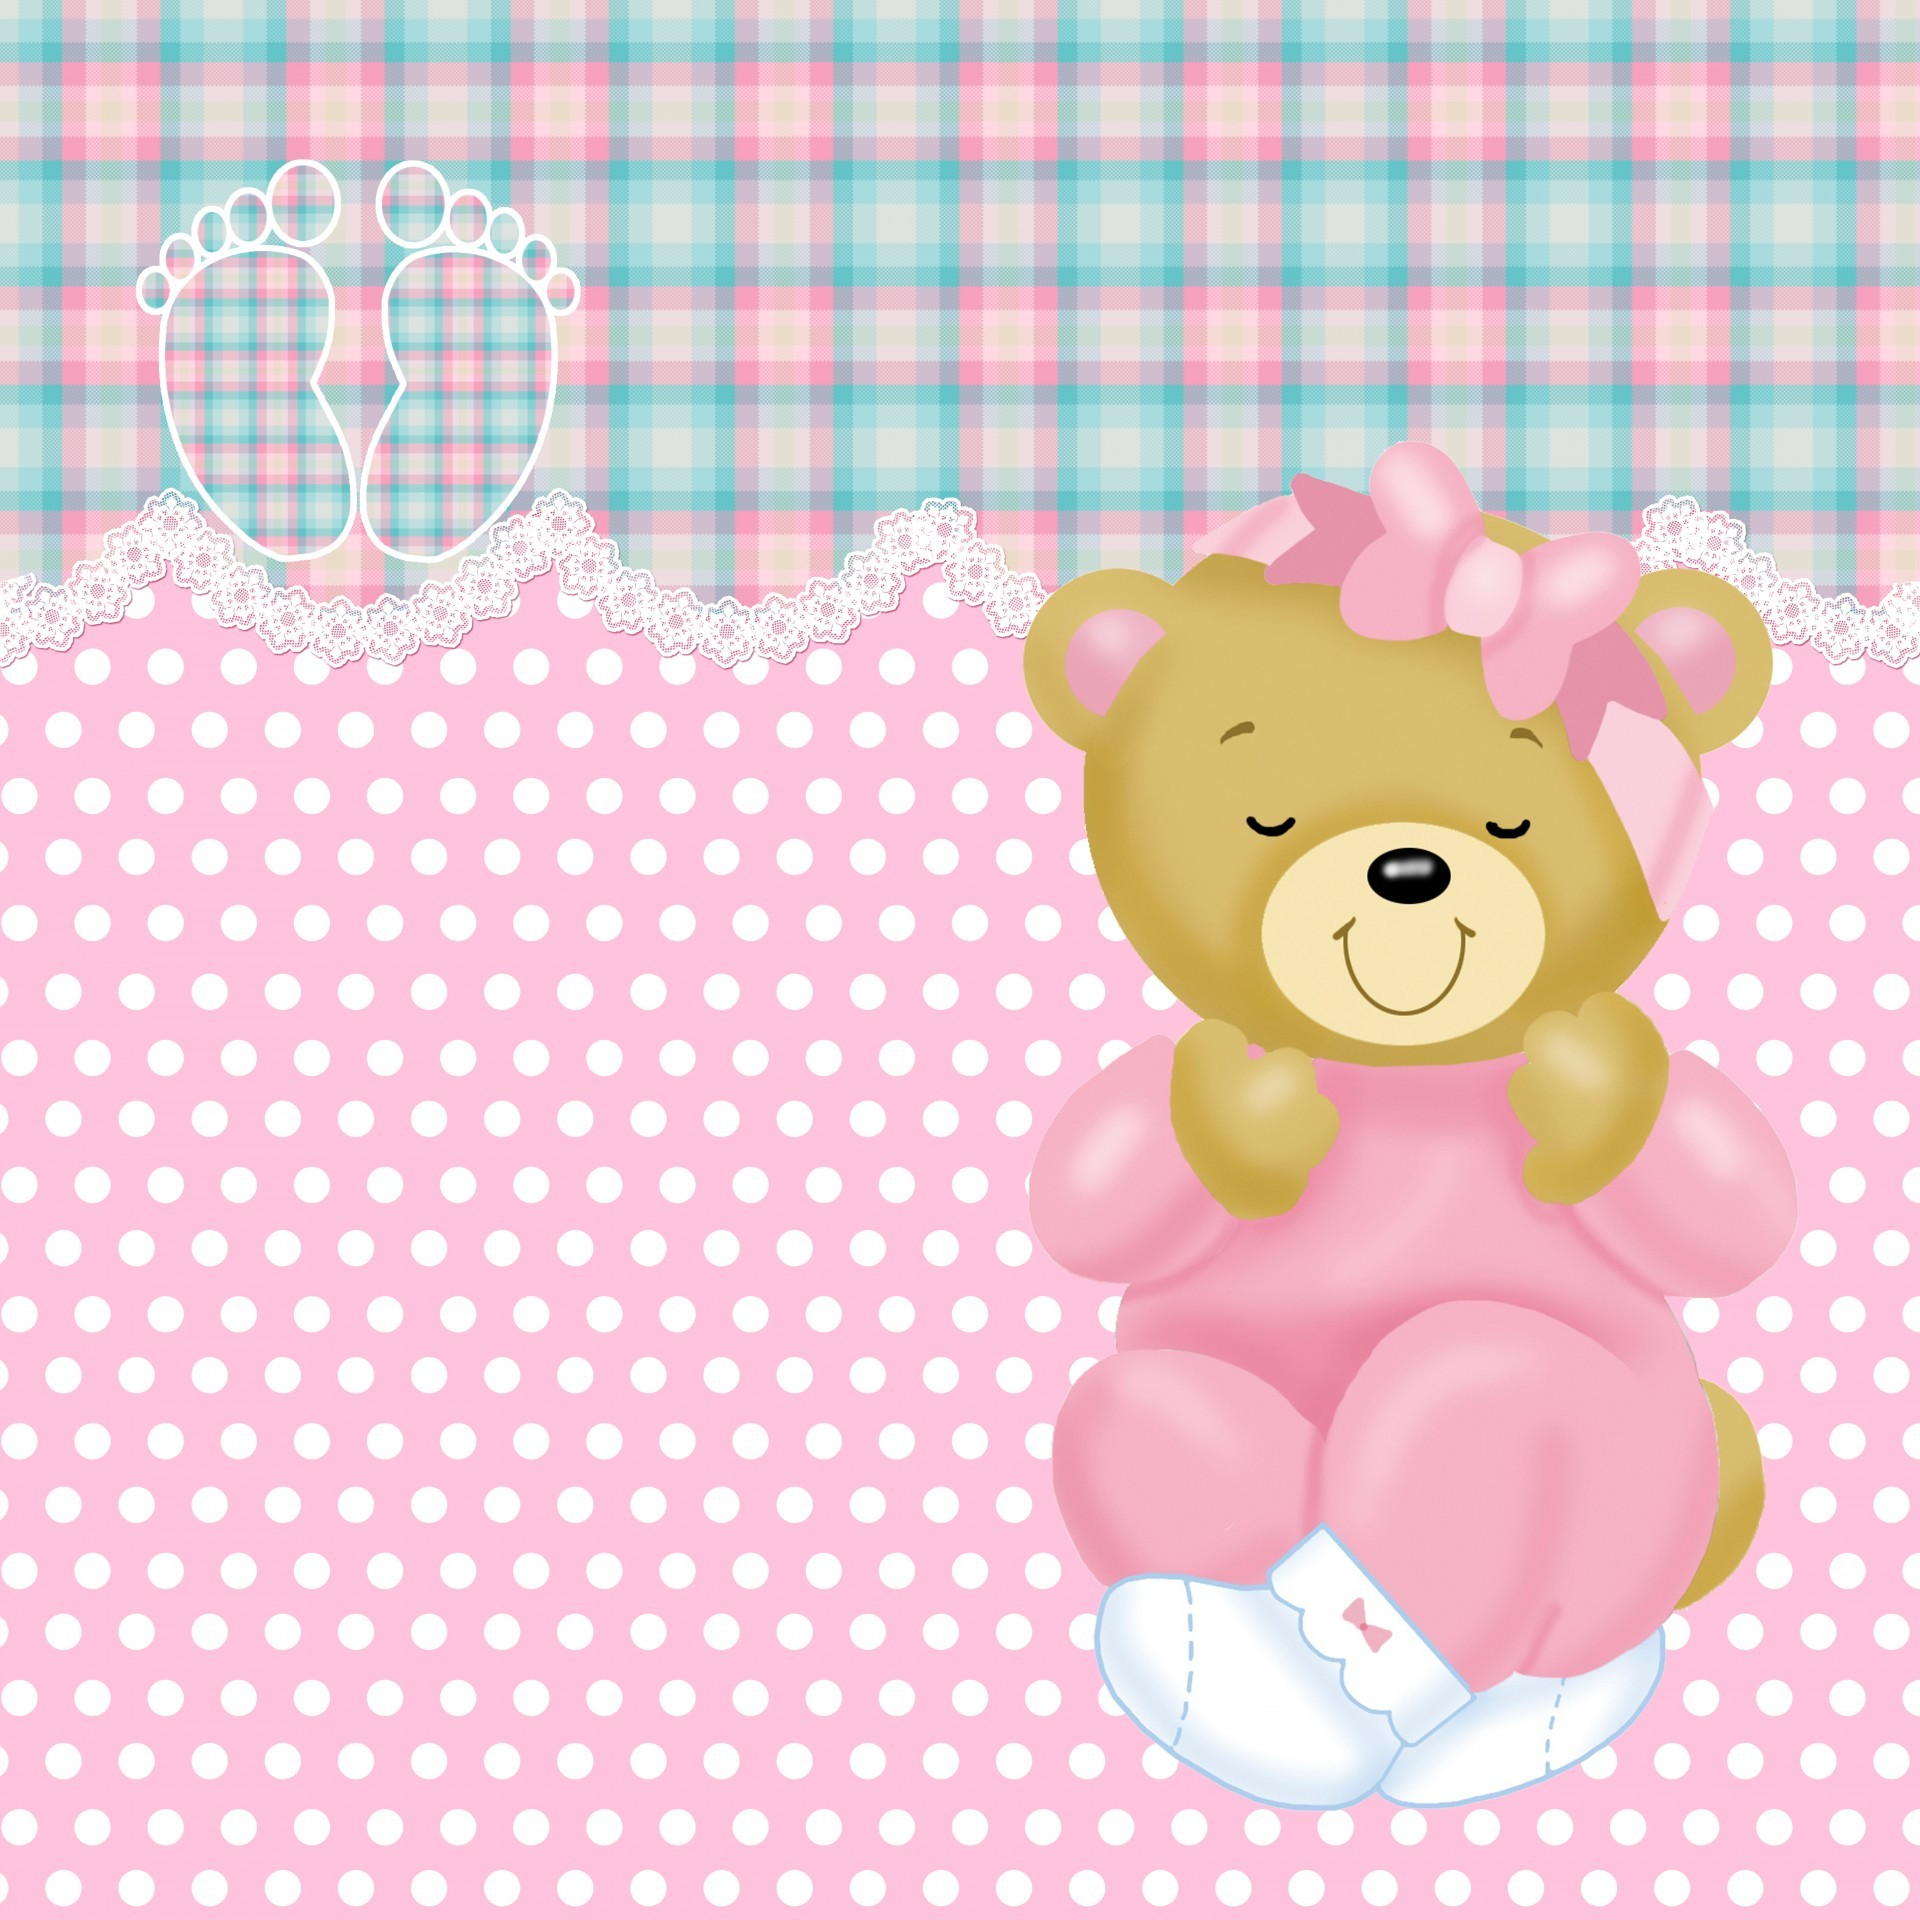 1920x1920 New Baby Girl Pink And Gingham